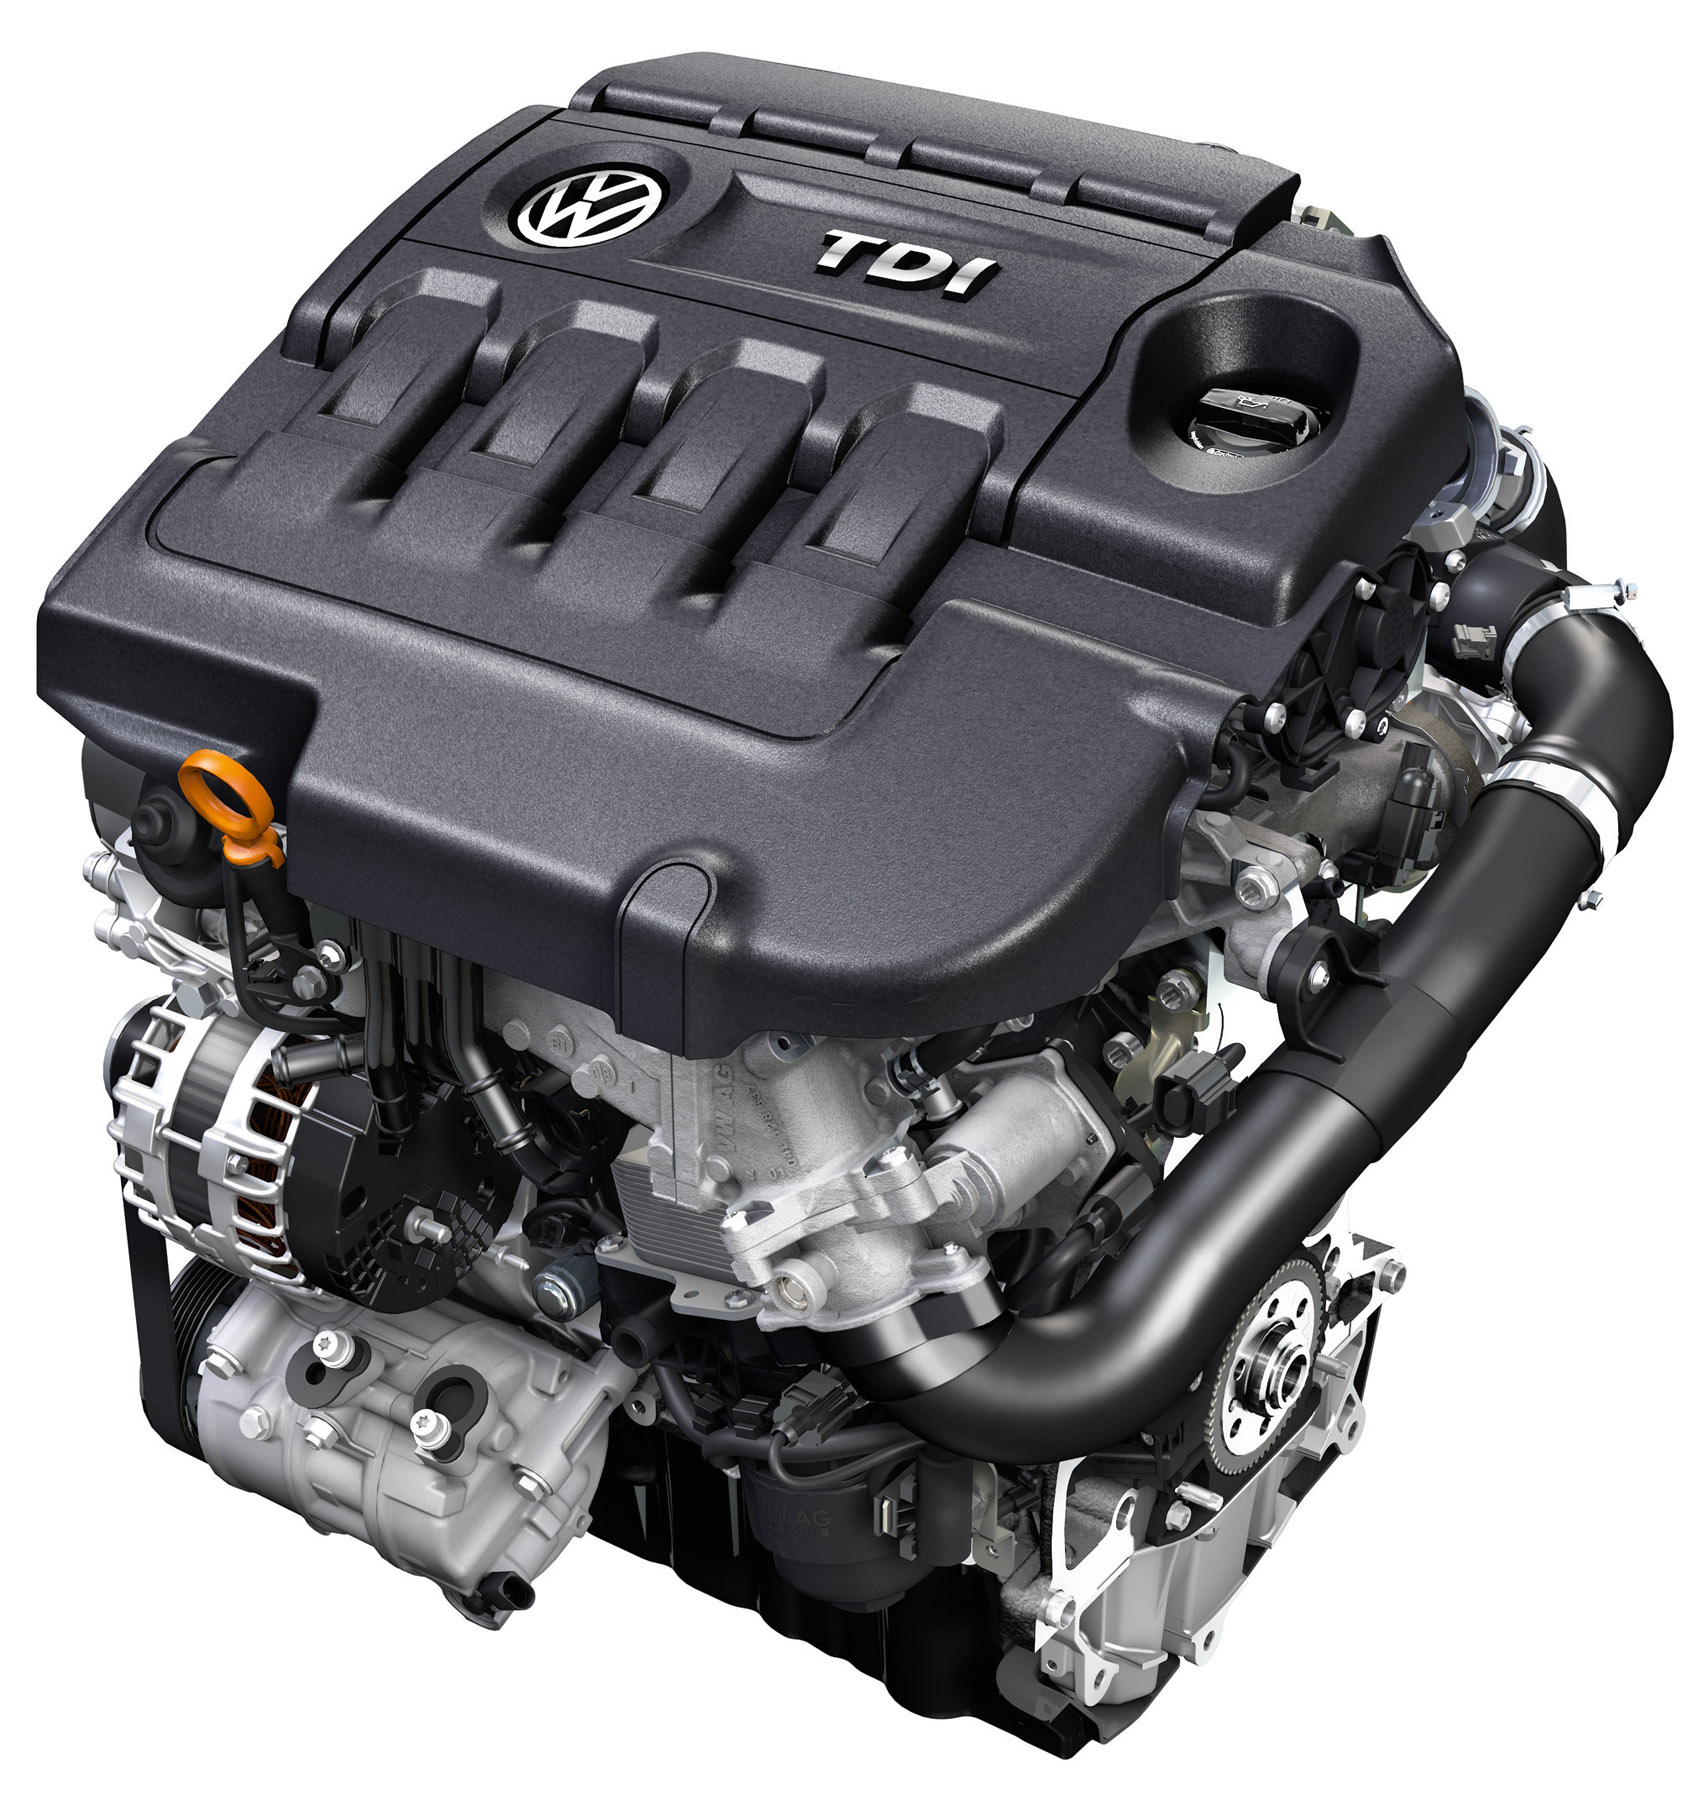 hight resolution of vw diesel engine diagram wiring library jetta tdi engine vw tdi engine diagram source